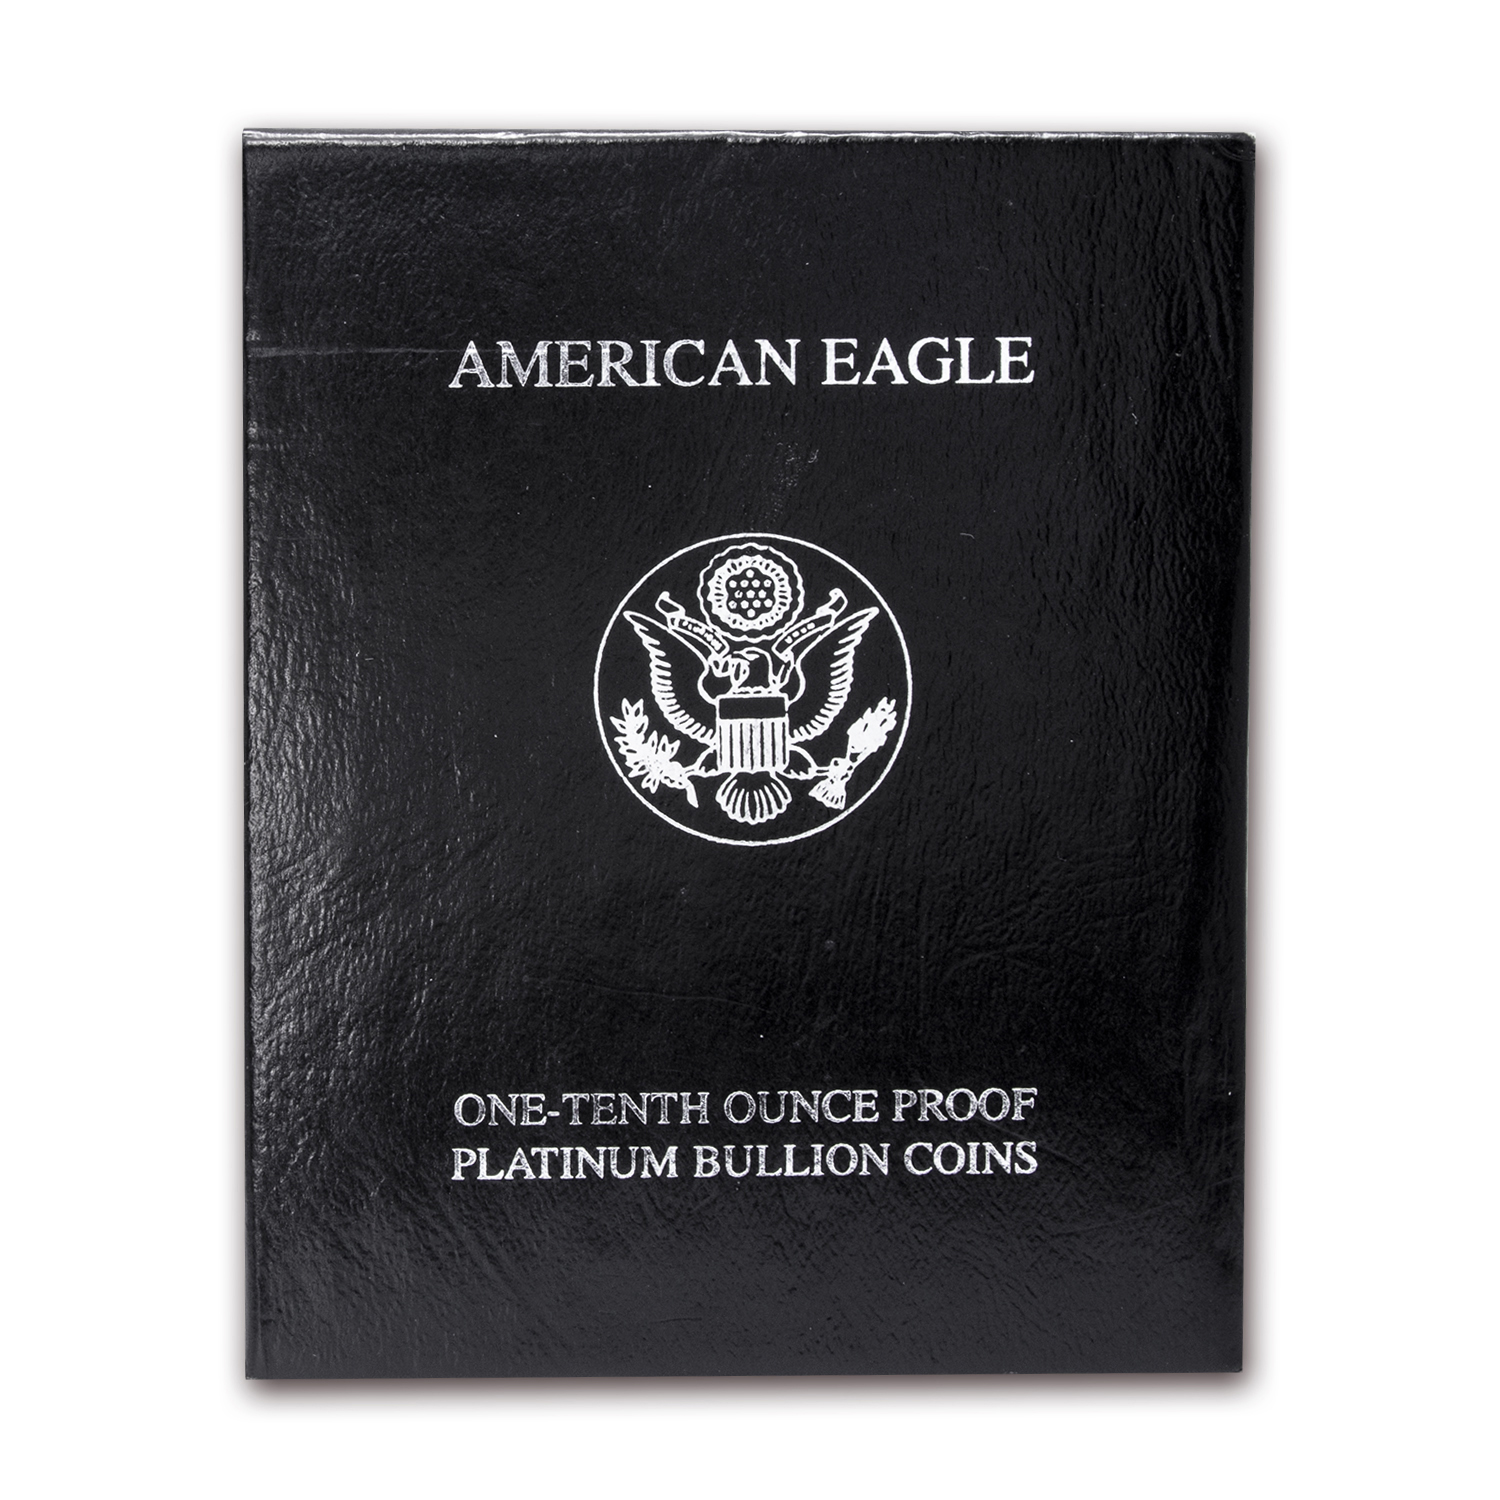 U.S. Mint Box - 2000 1/10 oz Platinum Eagle Proof Coin